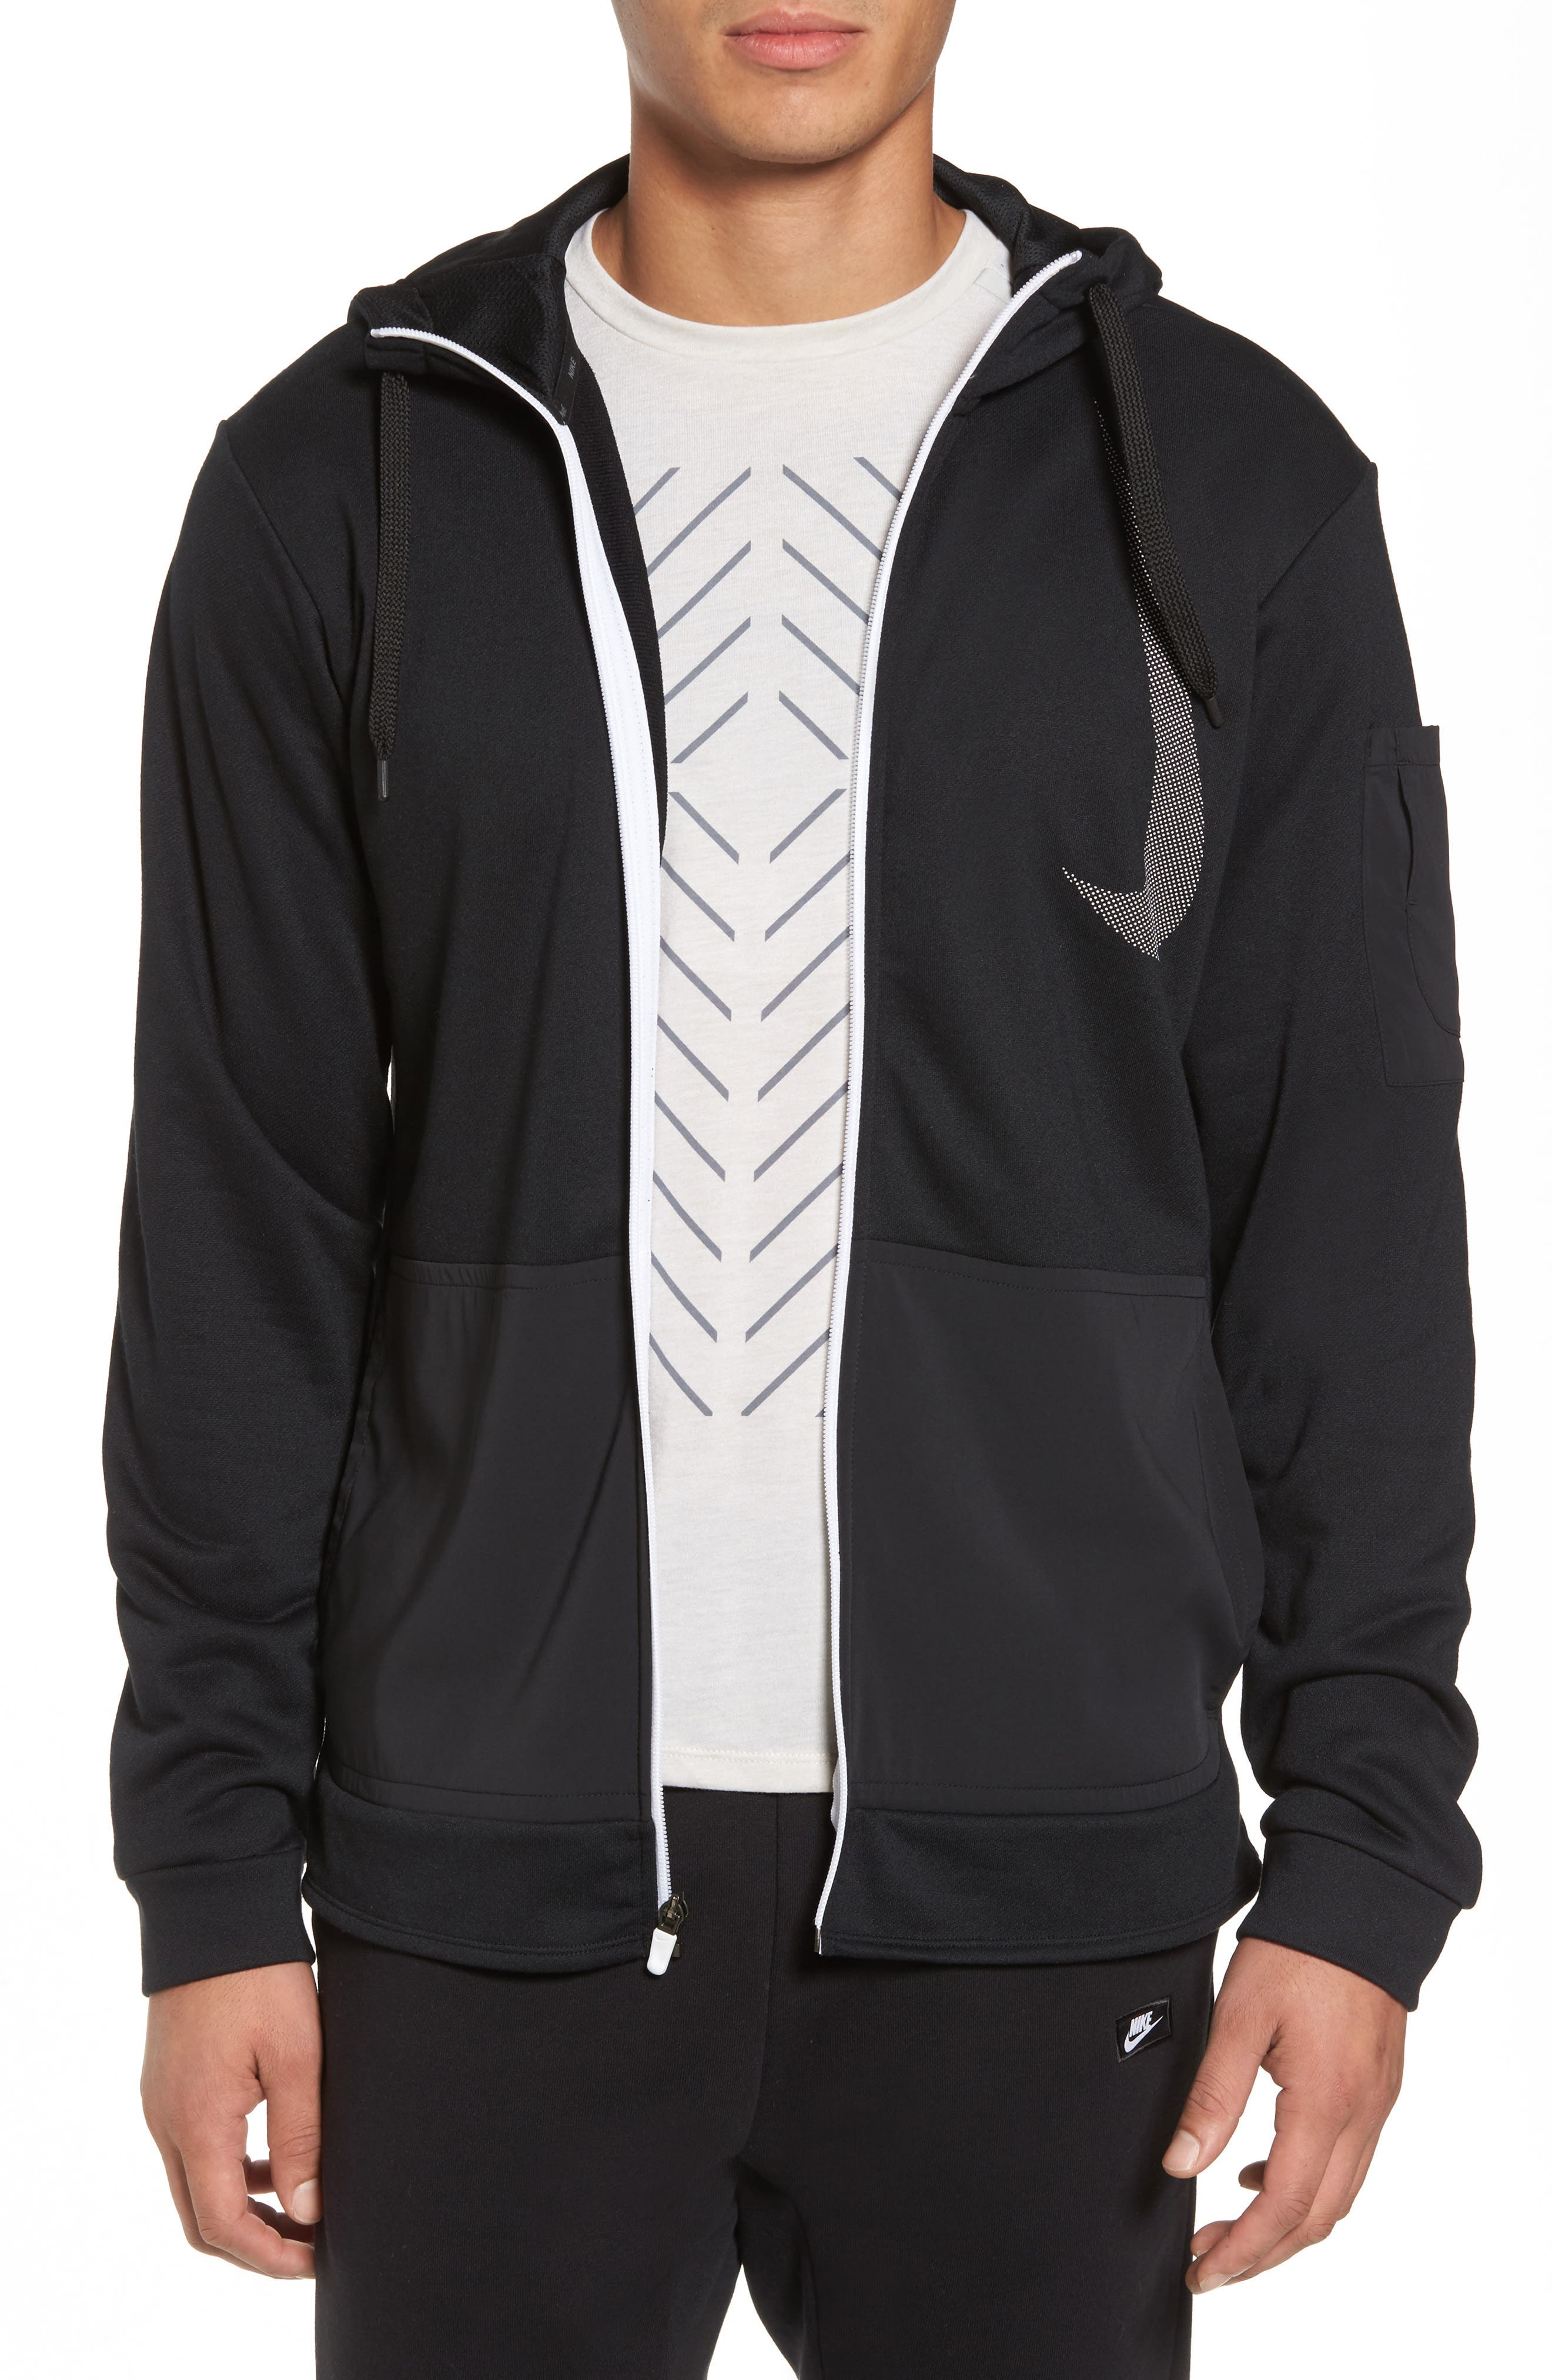 Training Dry PX Zip Hoodie,                             Main thumbnail 1, color,                             010